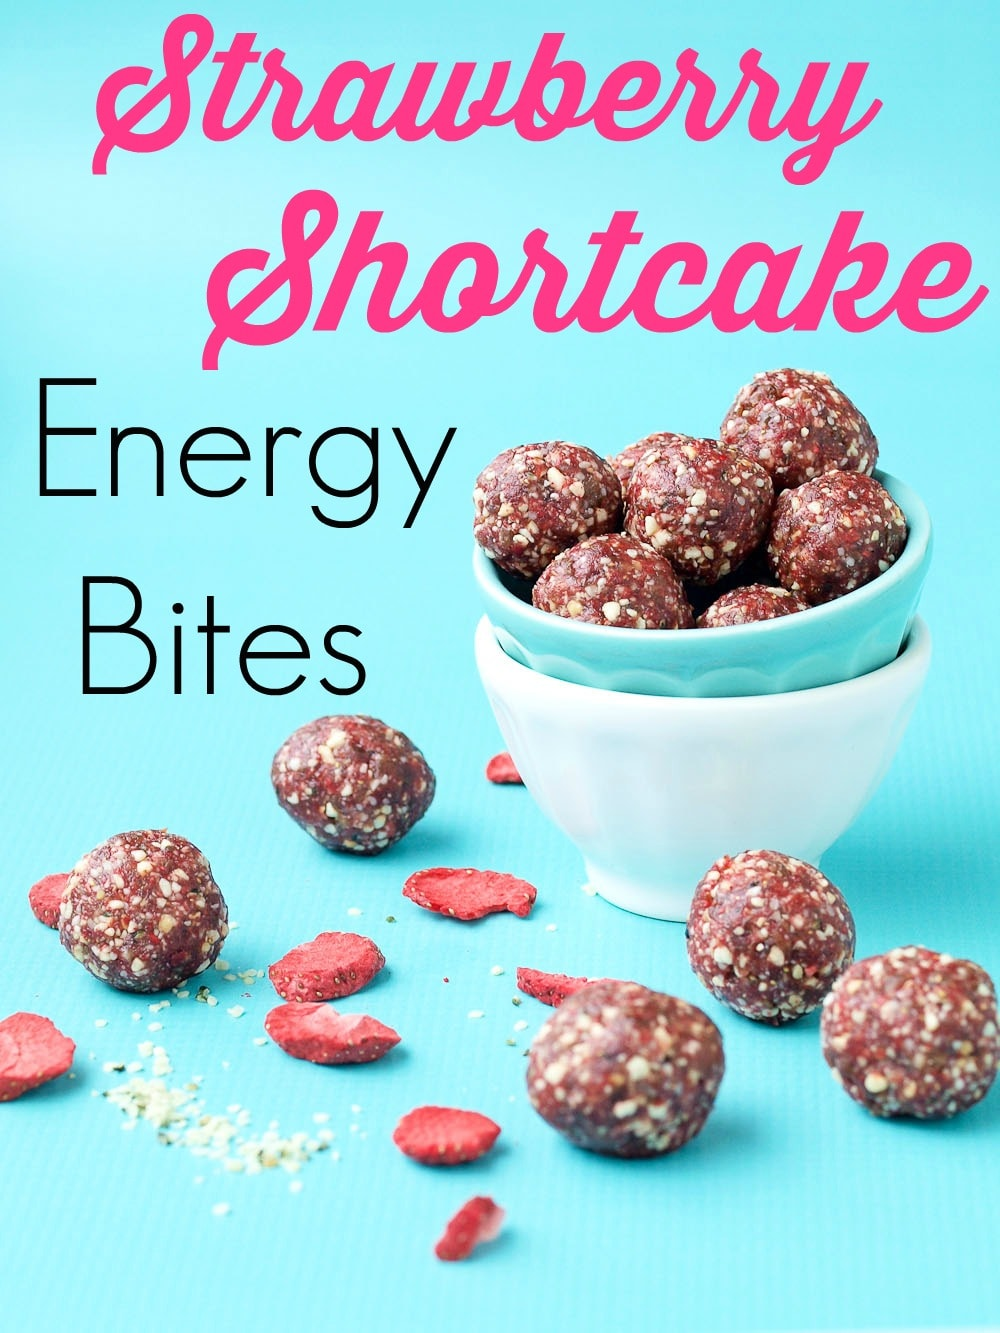 Strawberry Shortcake Energy Balls recipe. These energy bites taste like CAKE!! So easy to make and these are a perfect healthy snack. We love these as a portable grab-and-go snack. Gluten-free, vegan.